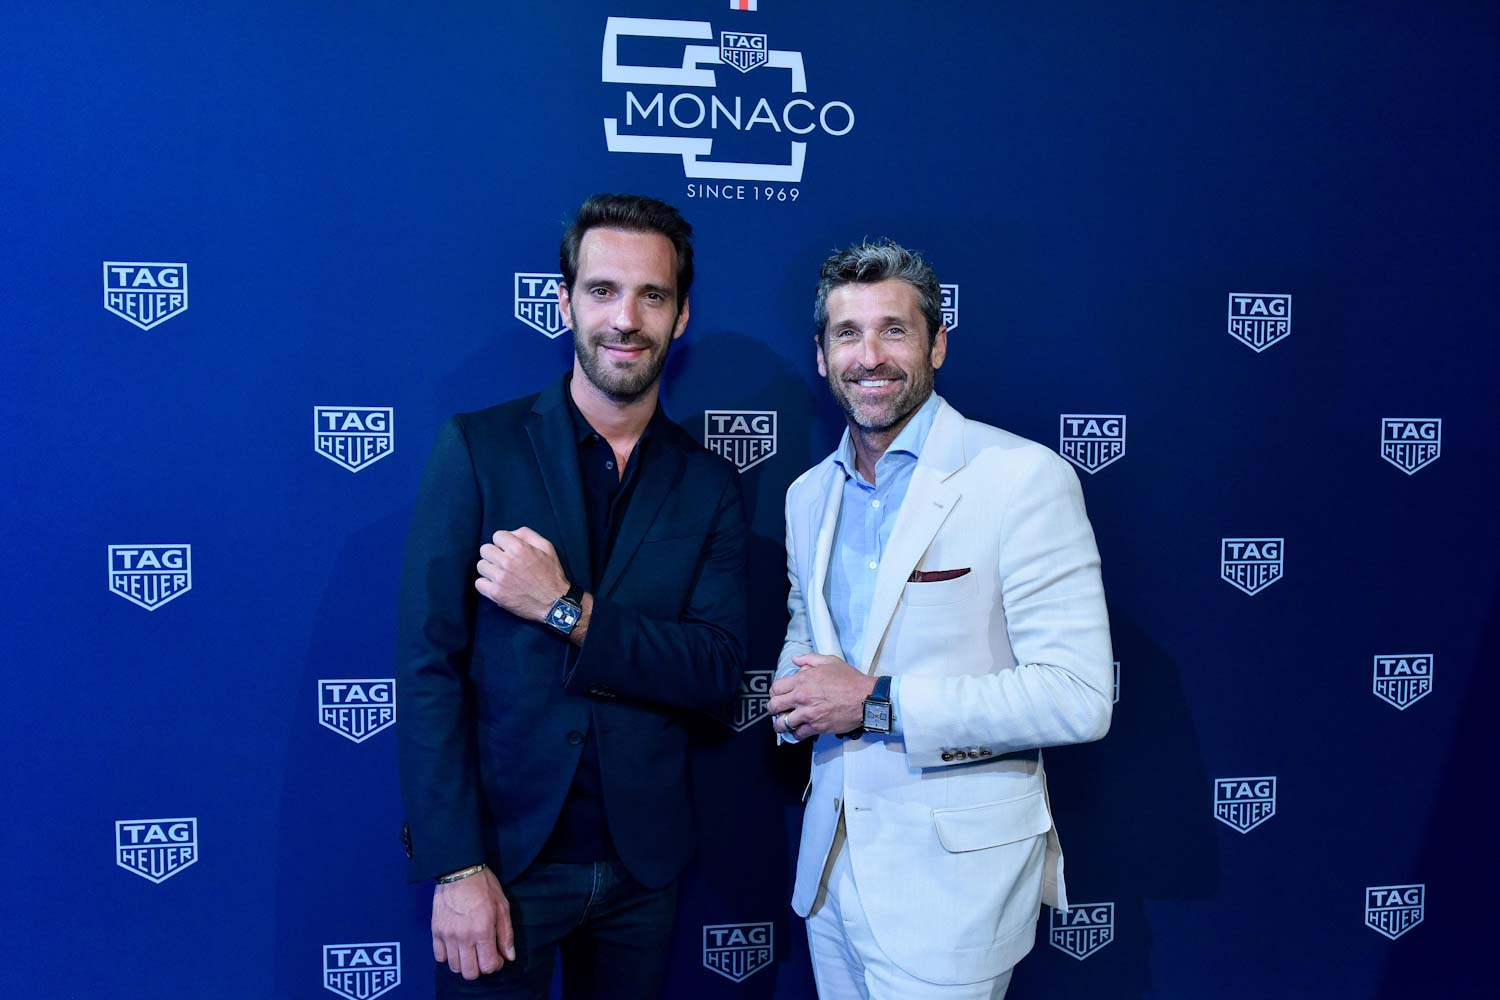 French Formula E driver Jean-Éric Vergne with Patrick Dempsey.